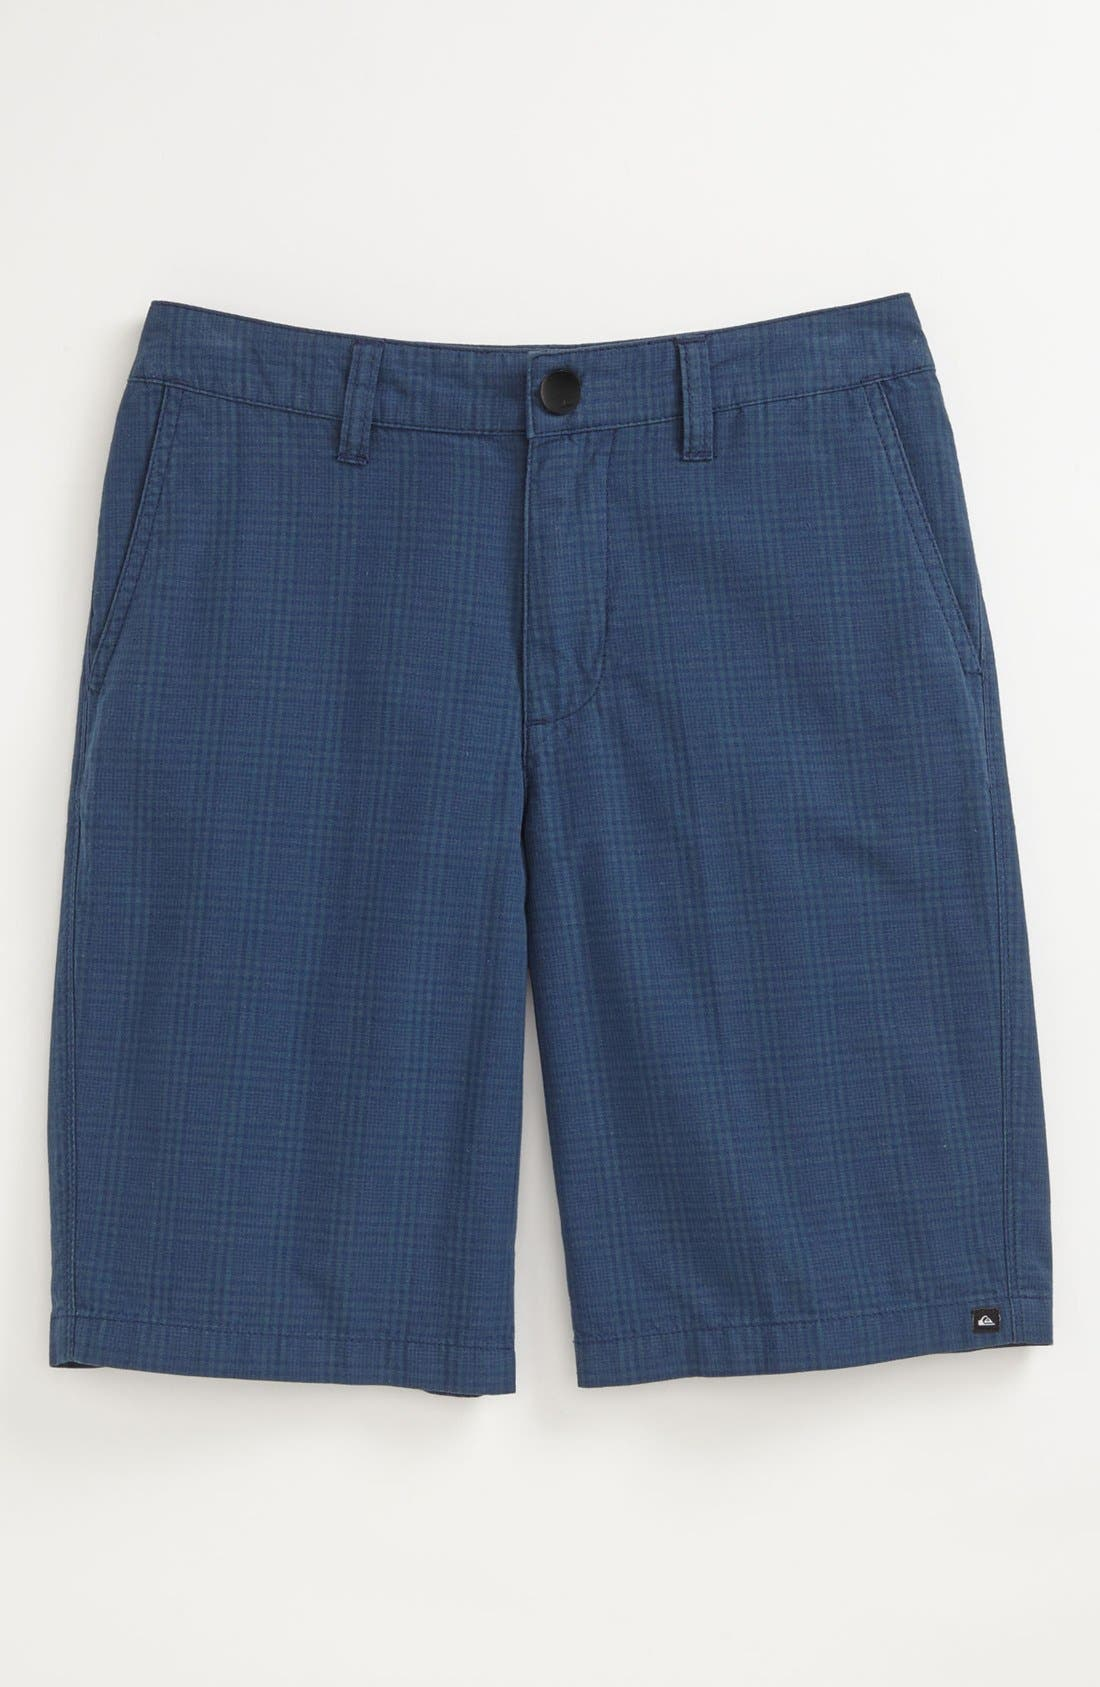 Main Image - Quiksilver 'Agenda' Shorts (Little Boys) (Online Only)